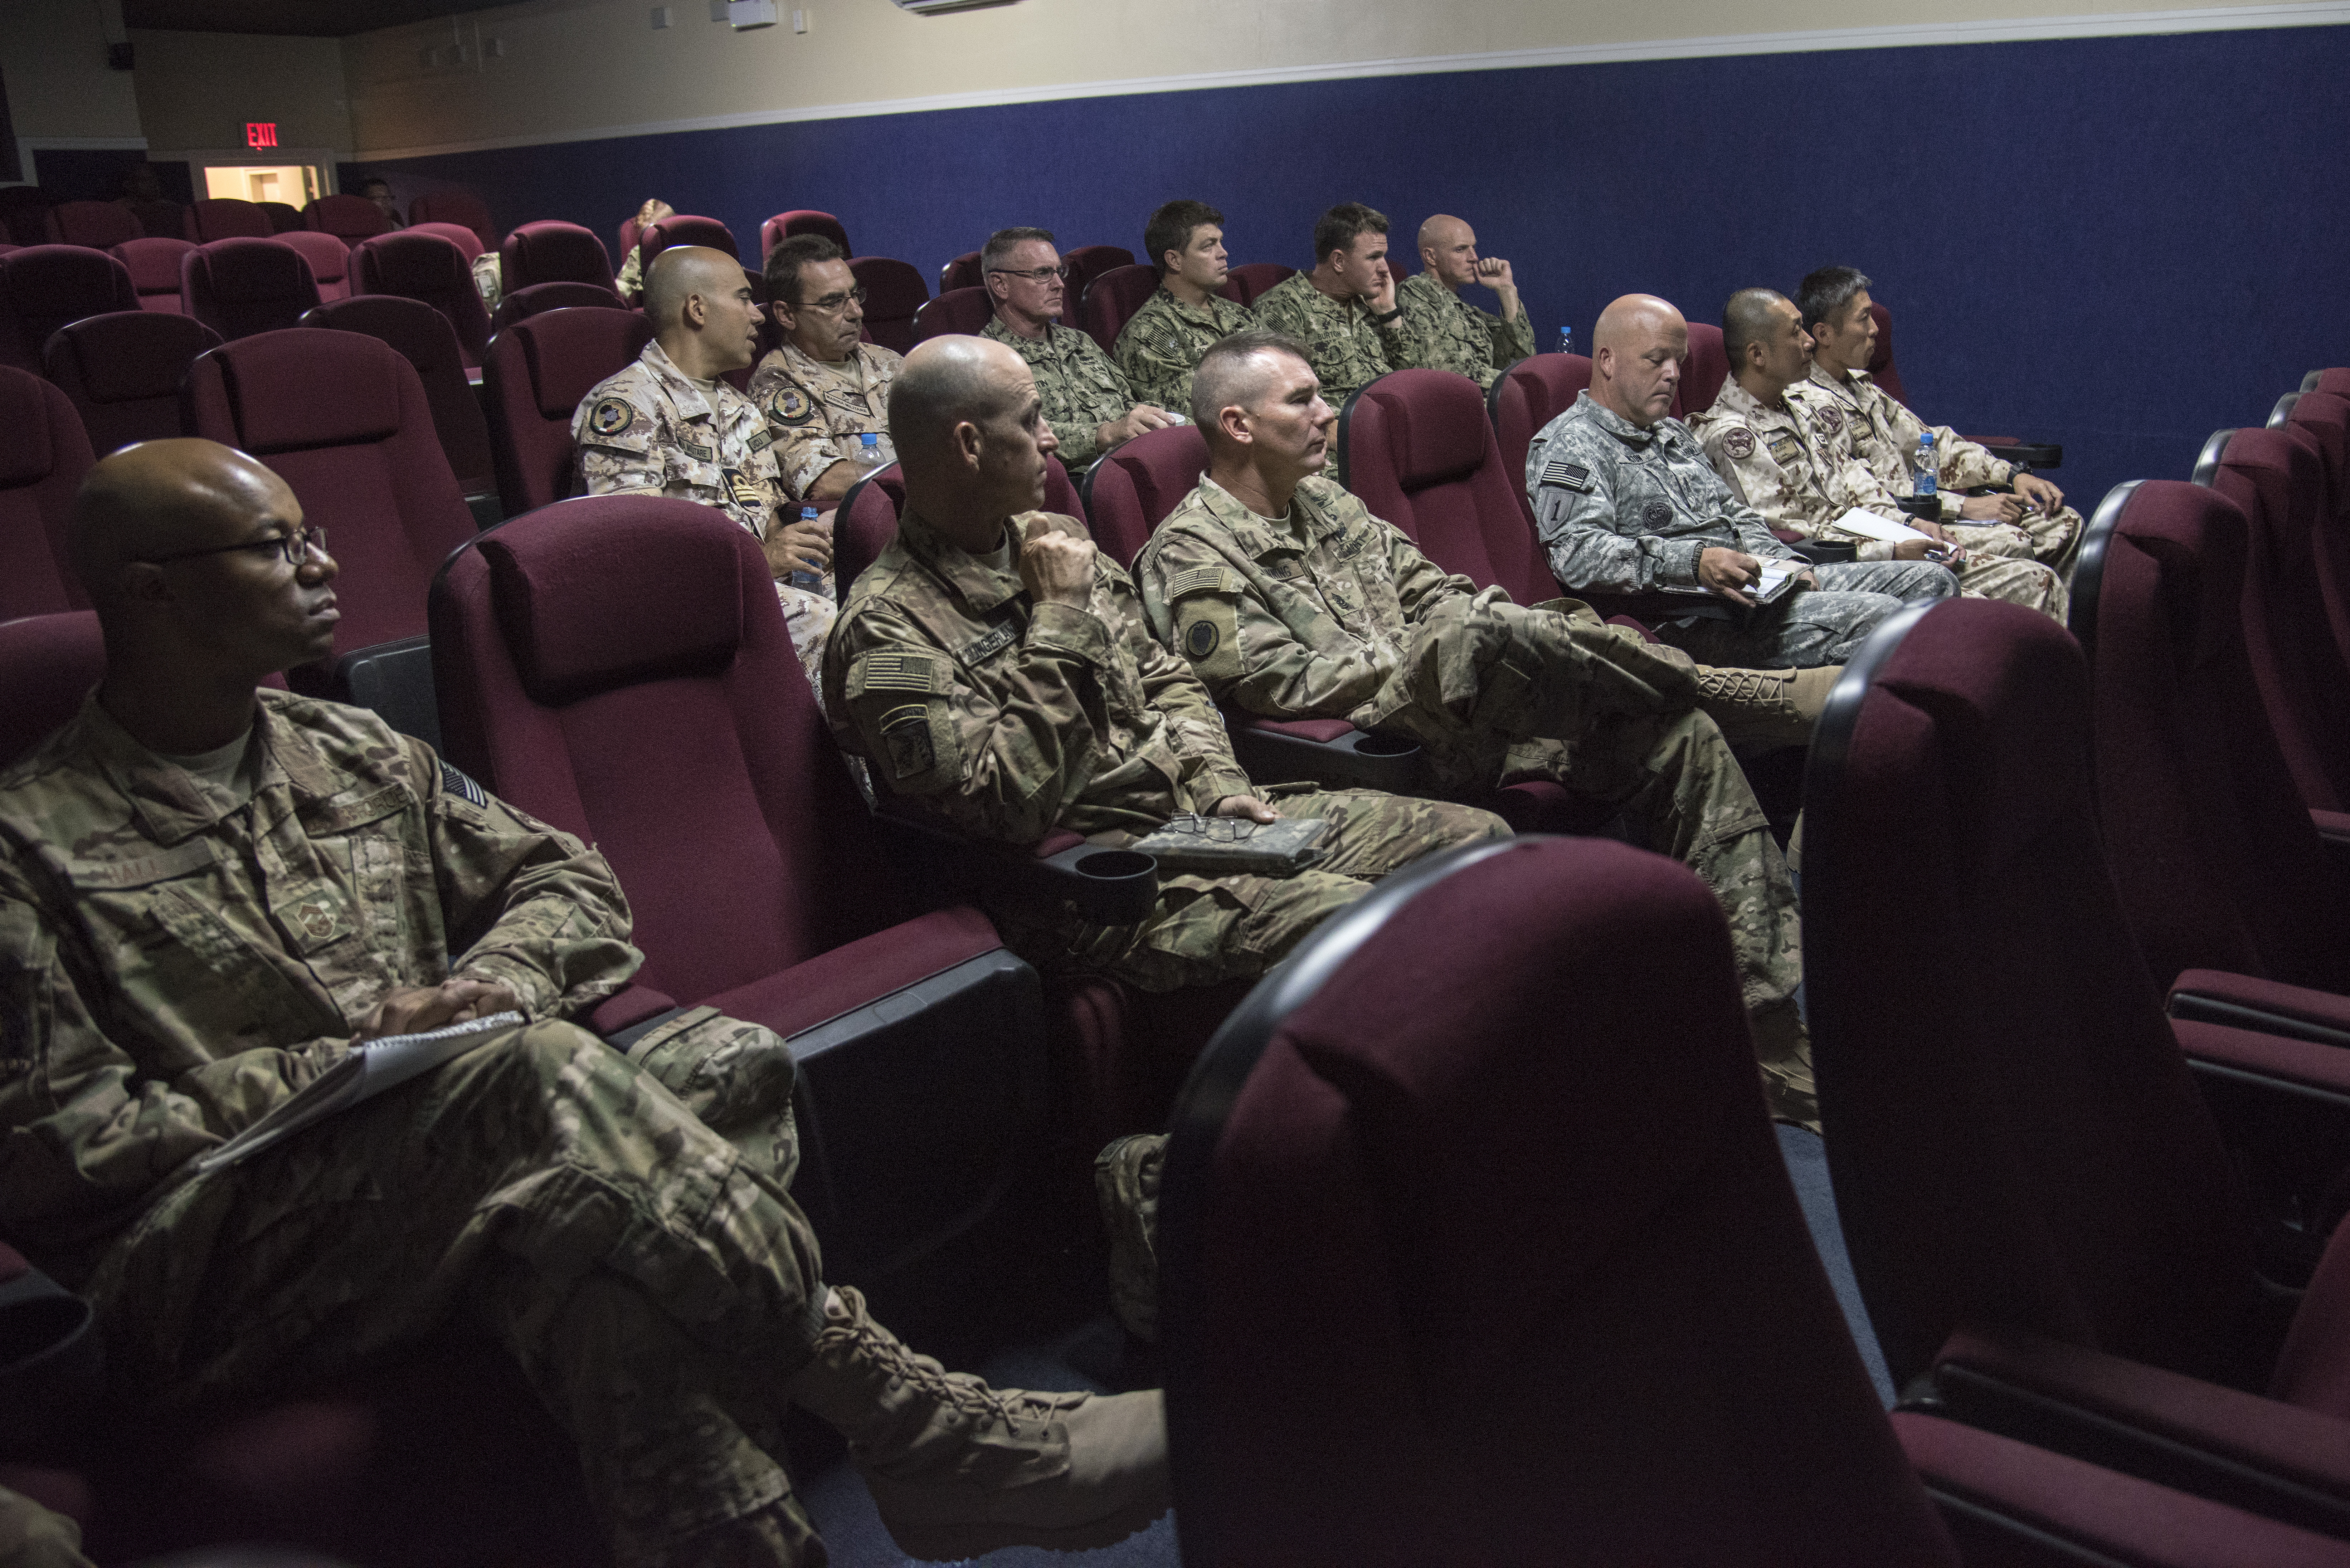 Senior enlisted leaders (SEL) composed of U.S., Japanese and Italian service members, attend the Joint Forces Senior Enlisted Leader Professional Development (JFSELPD) course at Camp Lemonnier, Djibouti, Oct.1, 2015. The JFSELPD is an all-services course aimed at mentoring and educating the highest-ranking SELs serving Combined Joint Task Force-Horn of Africa and Camp Lemonnier. (U.S. Air Force photo by Staff Sgt. Nathan Maysonet)